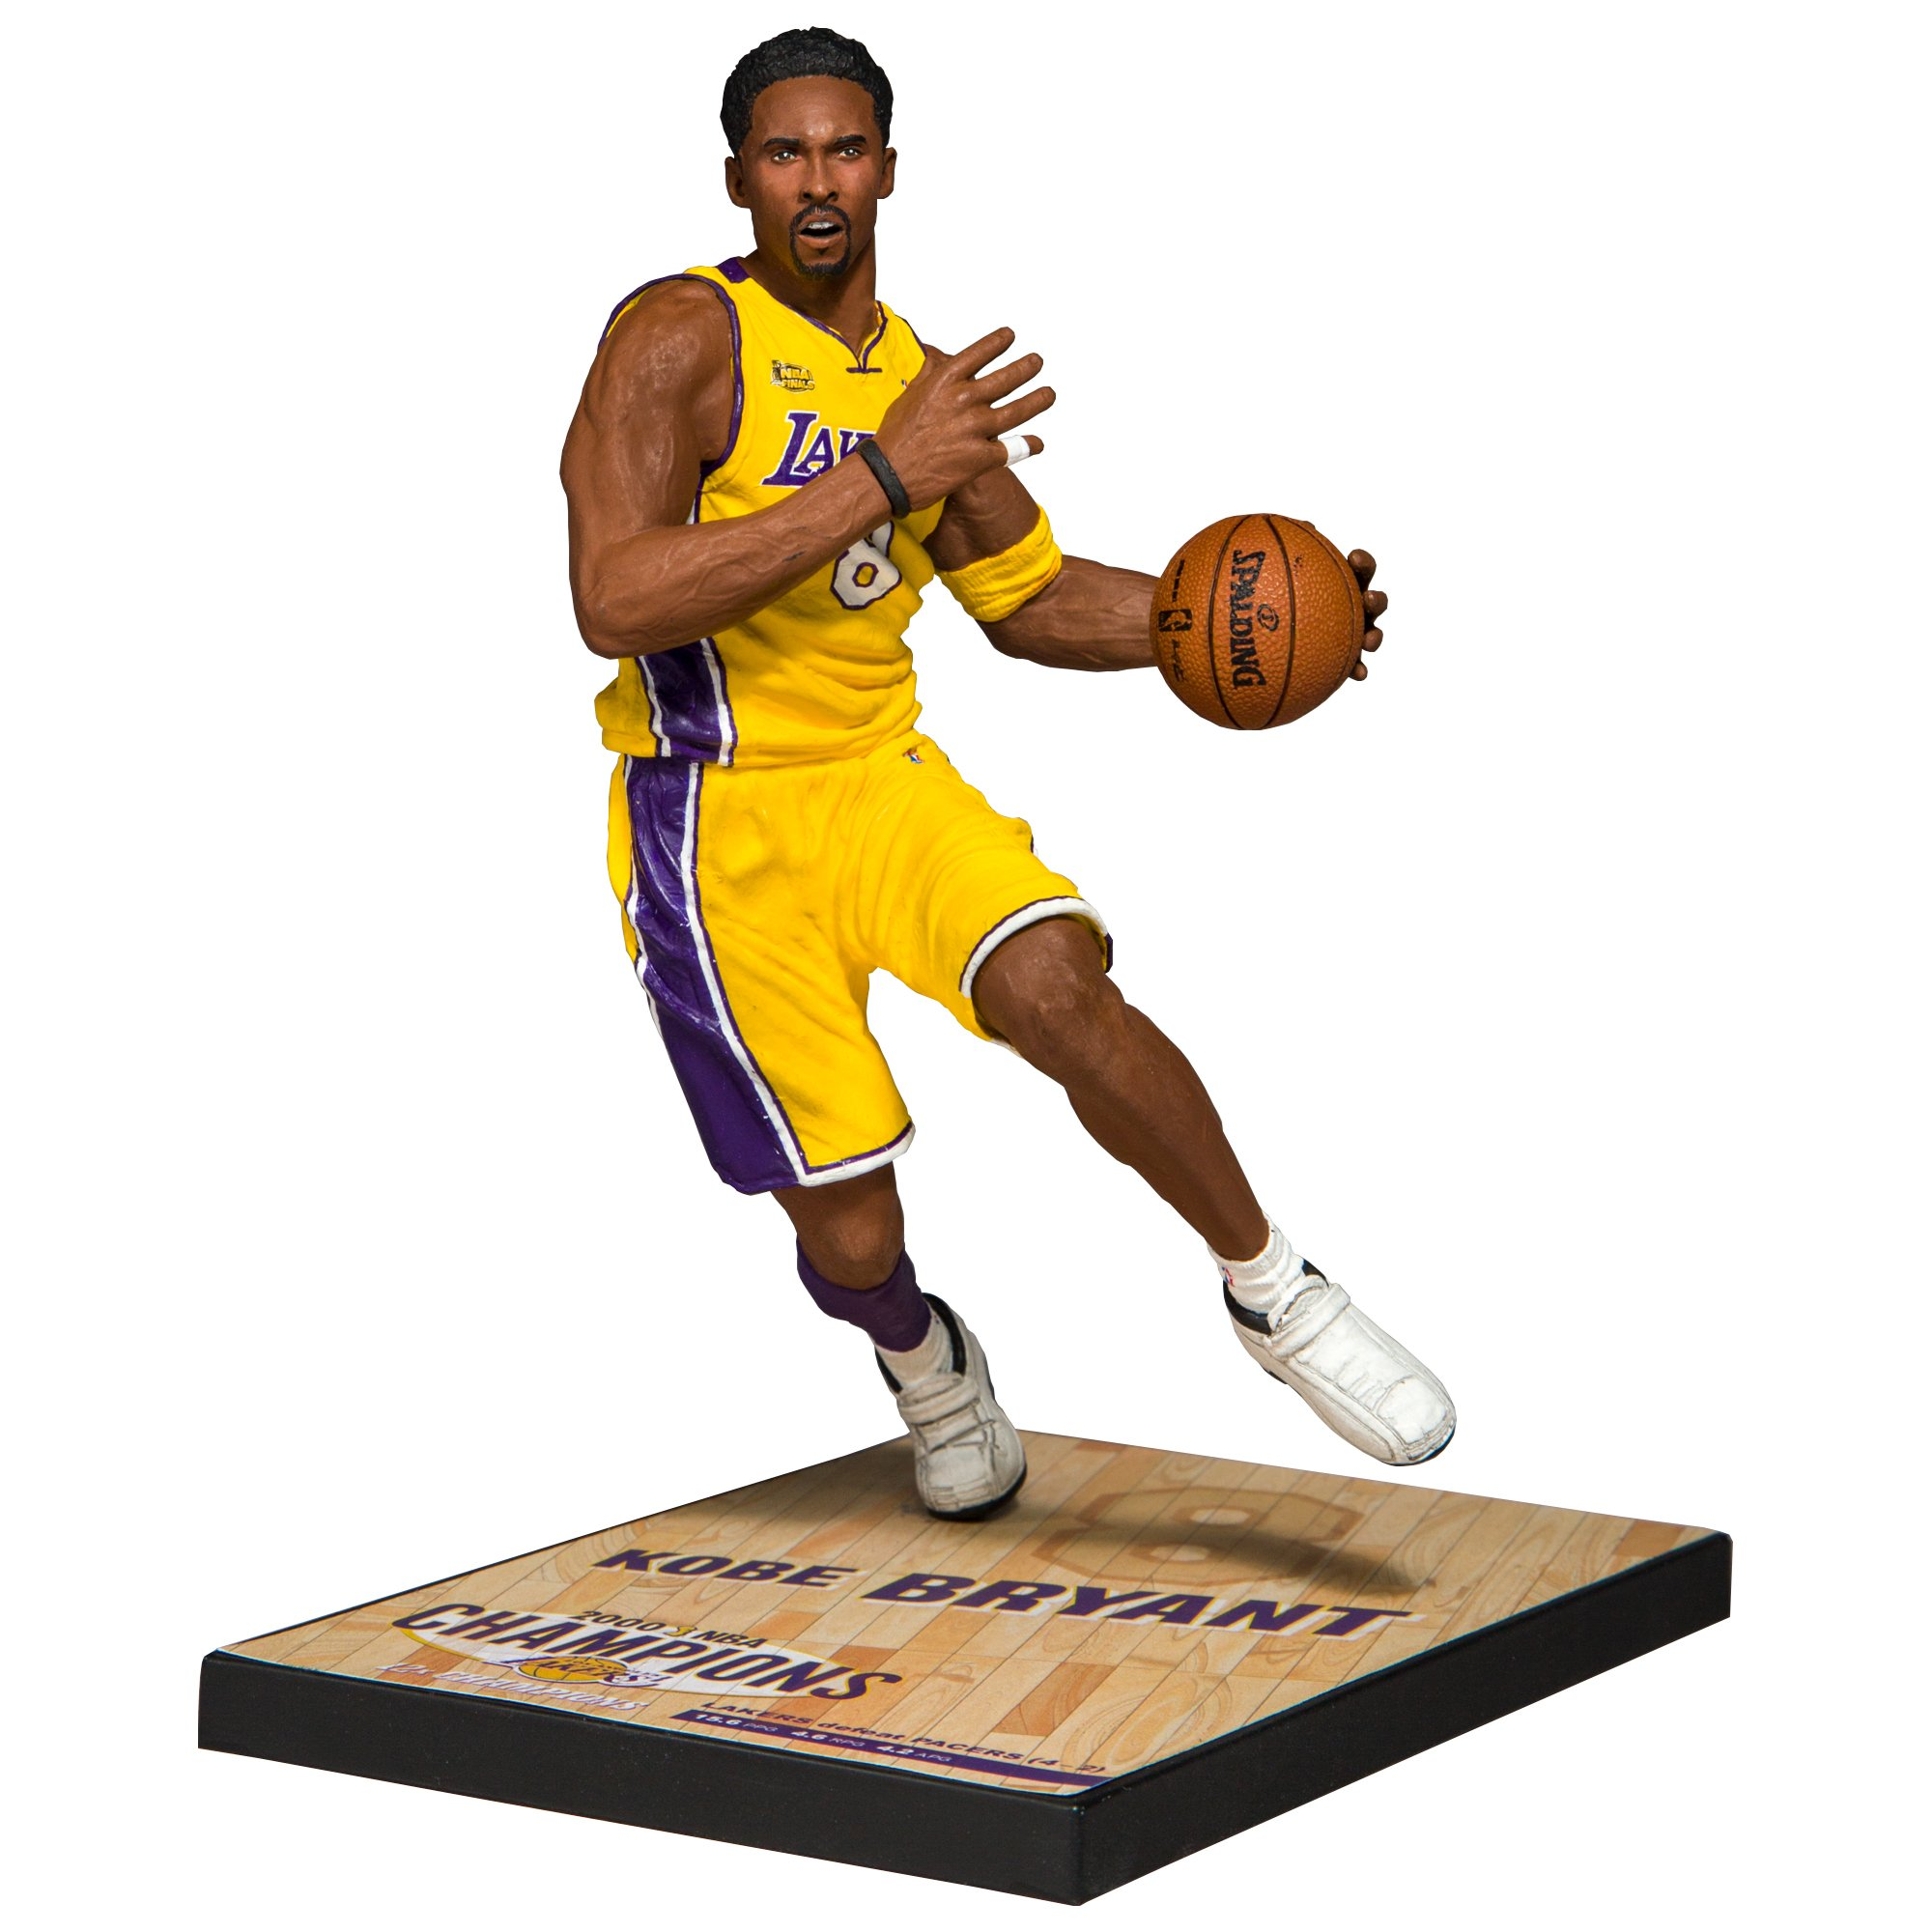 Other Action Figures - McFarlane Toys Kobe Bryant 2000 Nba ...